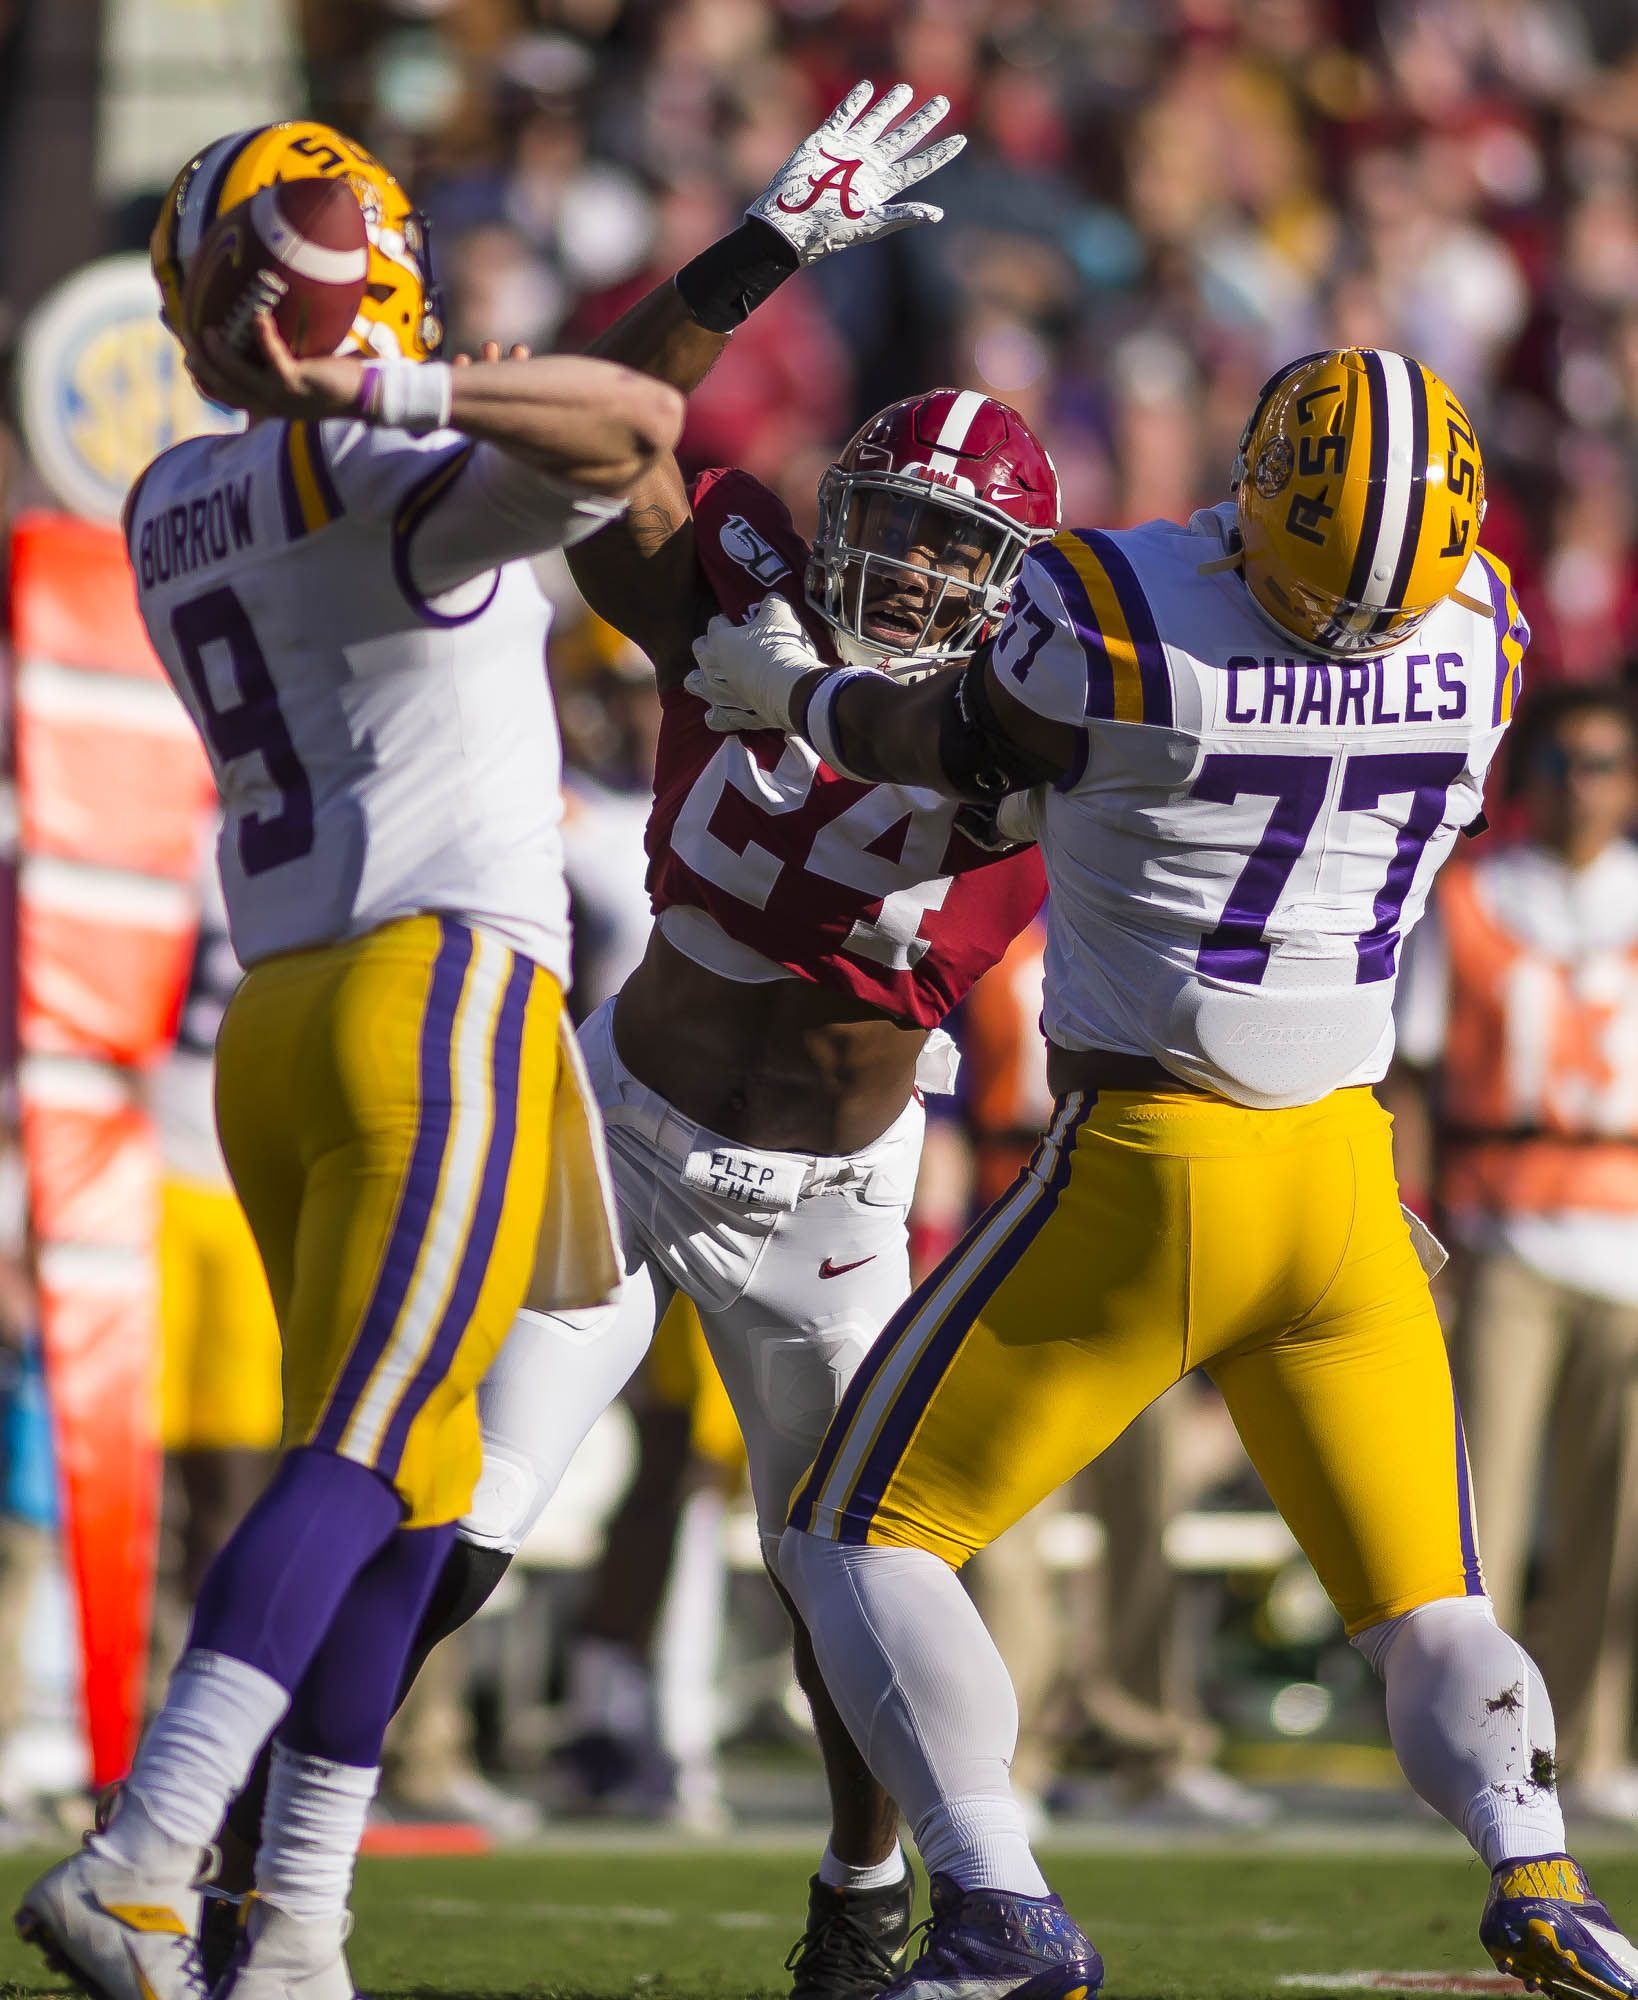 DOES LSU NOW HAVE CLEAR RECRUITING EDGE ON ALABAMA in 2020